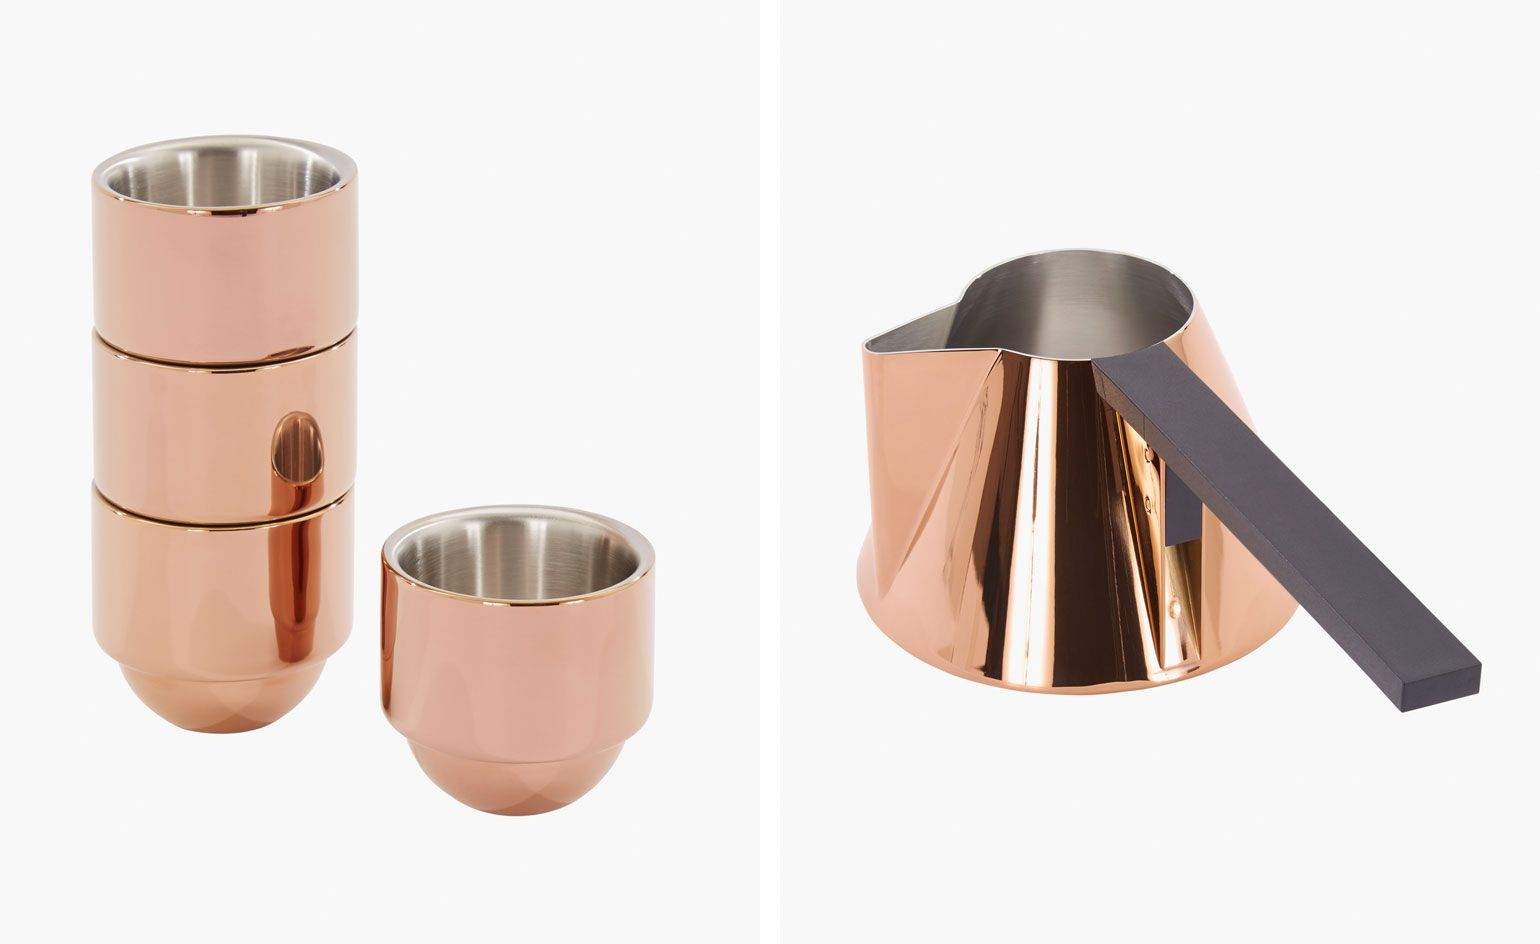 Home Brew Tom Dixon Launches Copper Coffee Set Collection